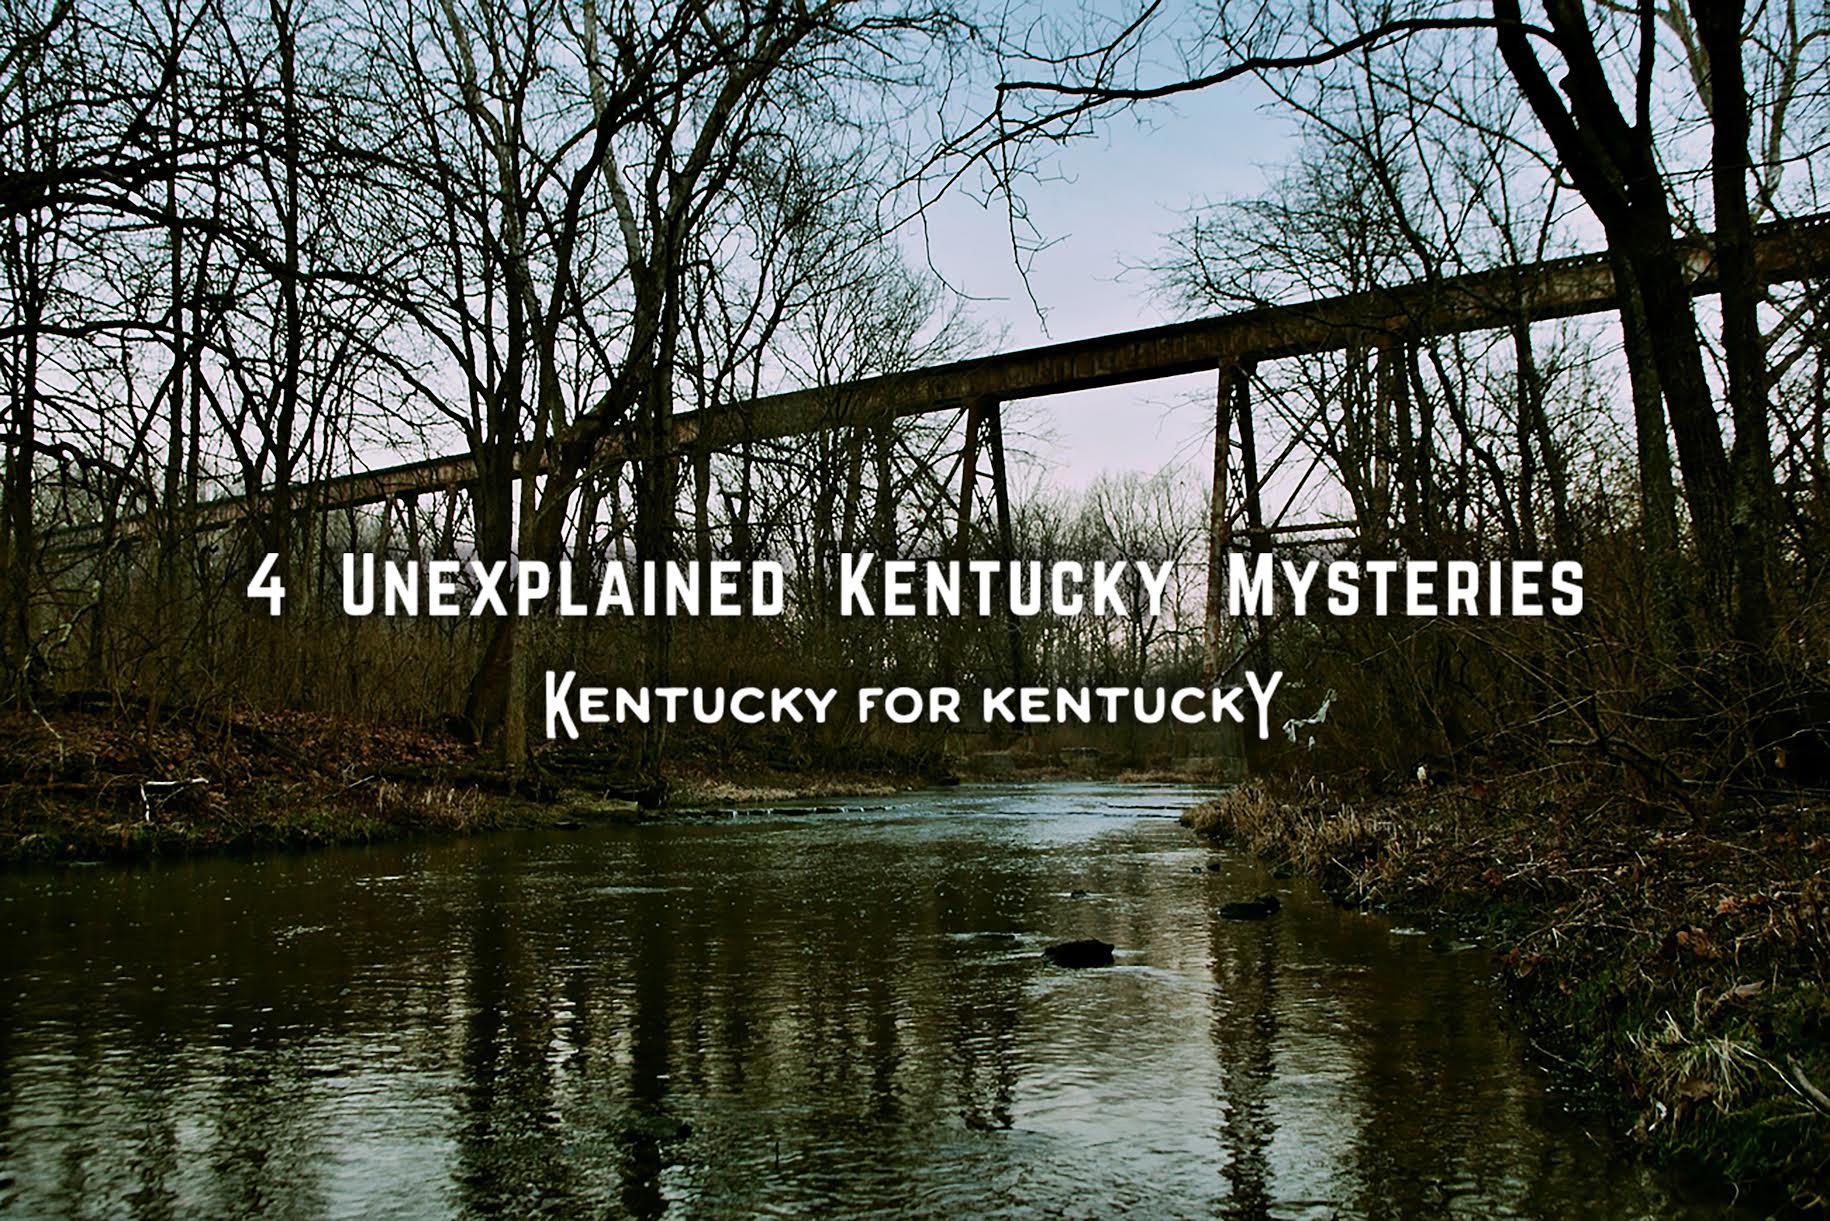 4 Unexplained Kentucky Mysteries